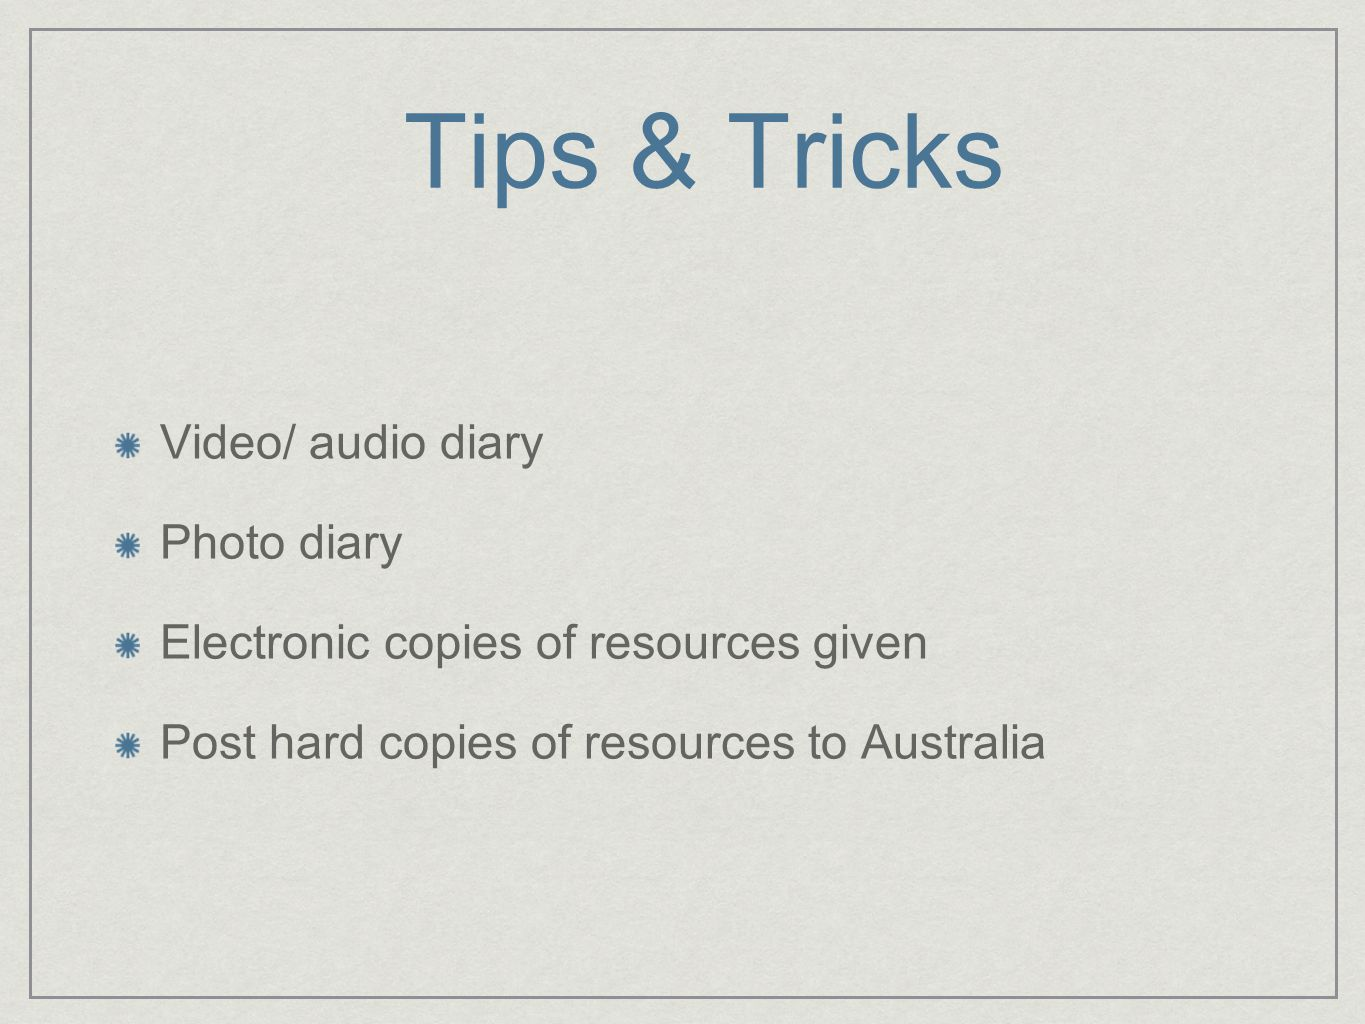 Tips & Tricks Video/ audio diary Photo diary Electronic copies of resources given Post hard copies of resources to Australia